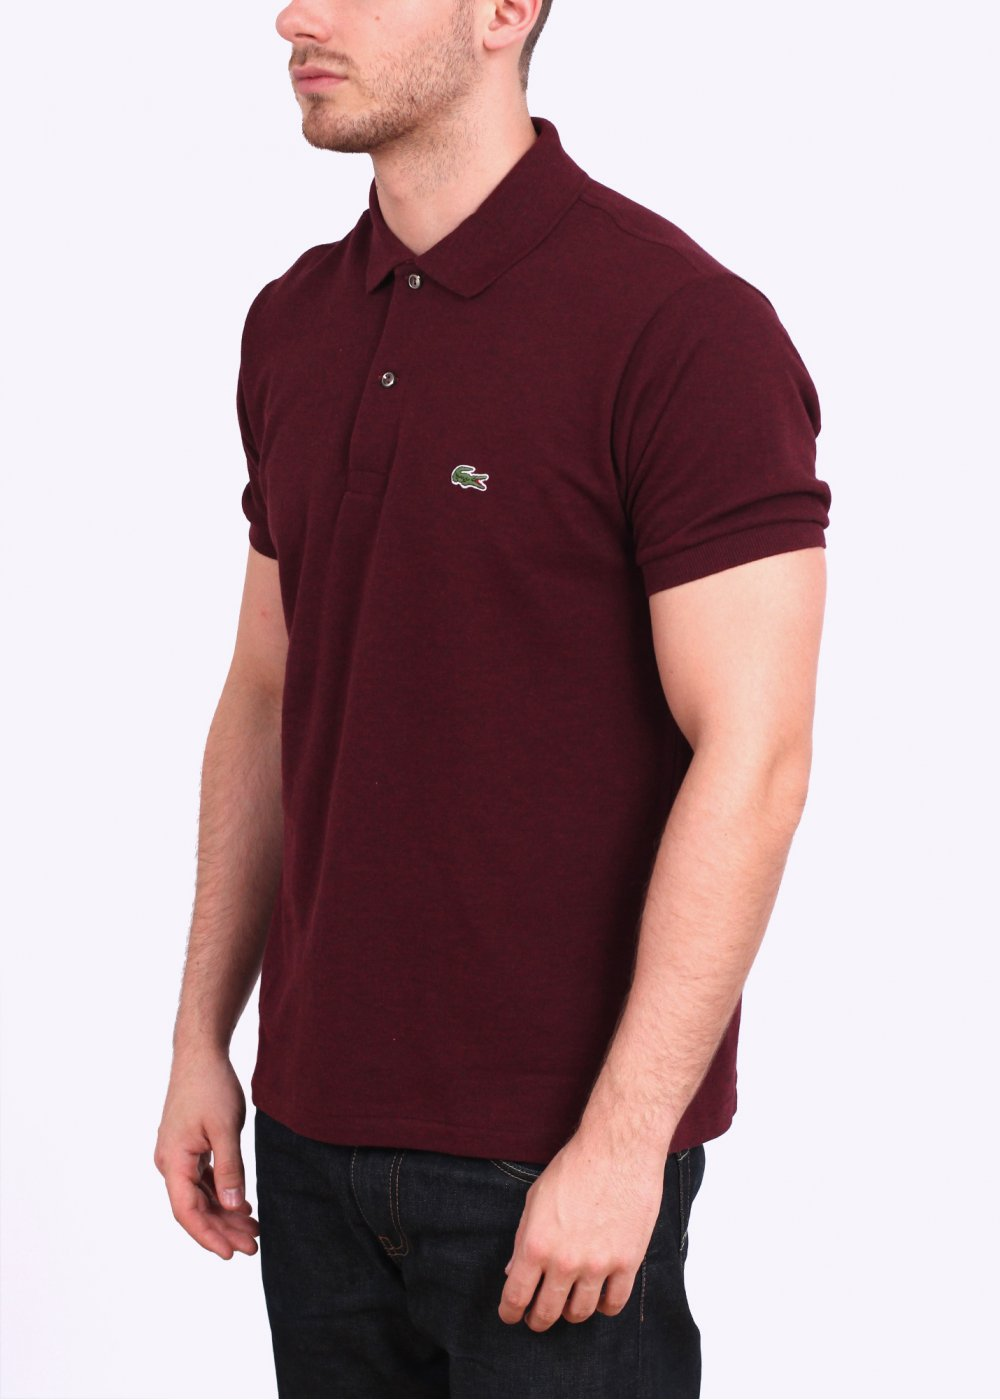 Lacoste short sleeve polo shirt billberry red lacoste for Short sleeve lacoste shirt